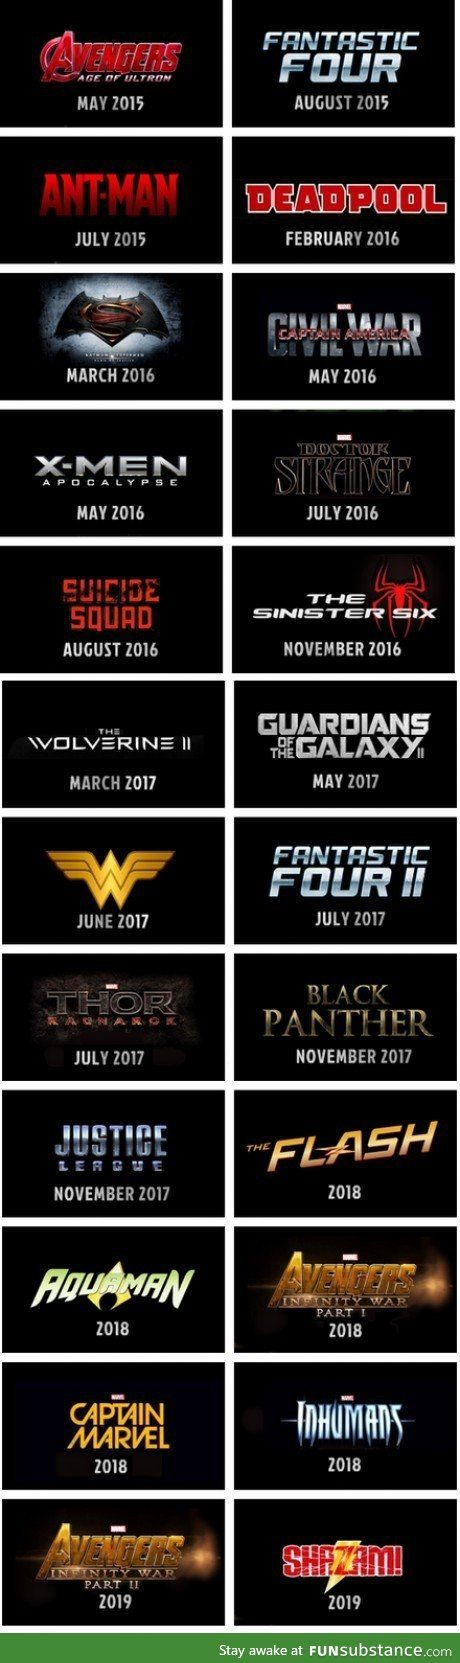 Marvel, DC, Fox, Sony...The full superhero movie lineup